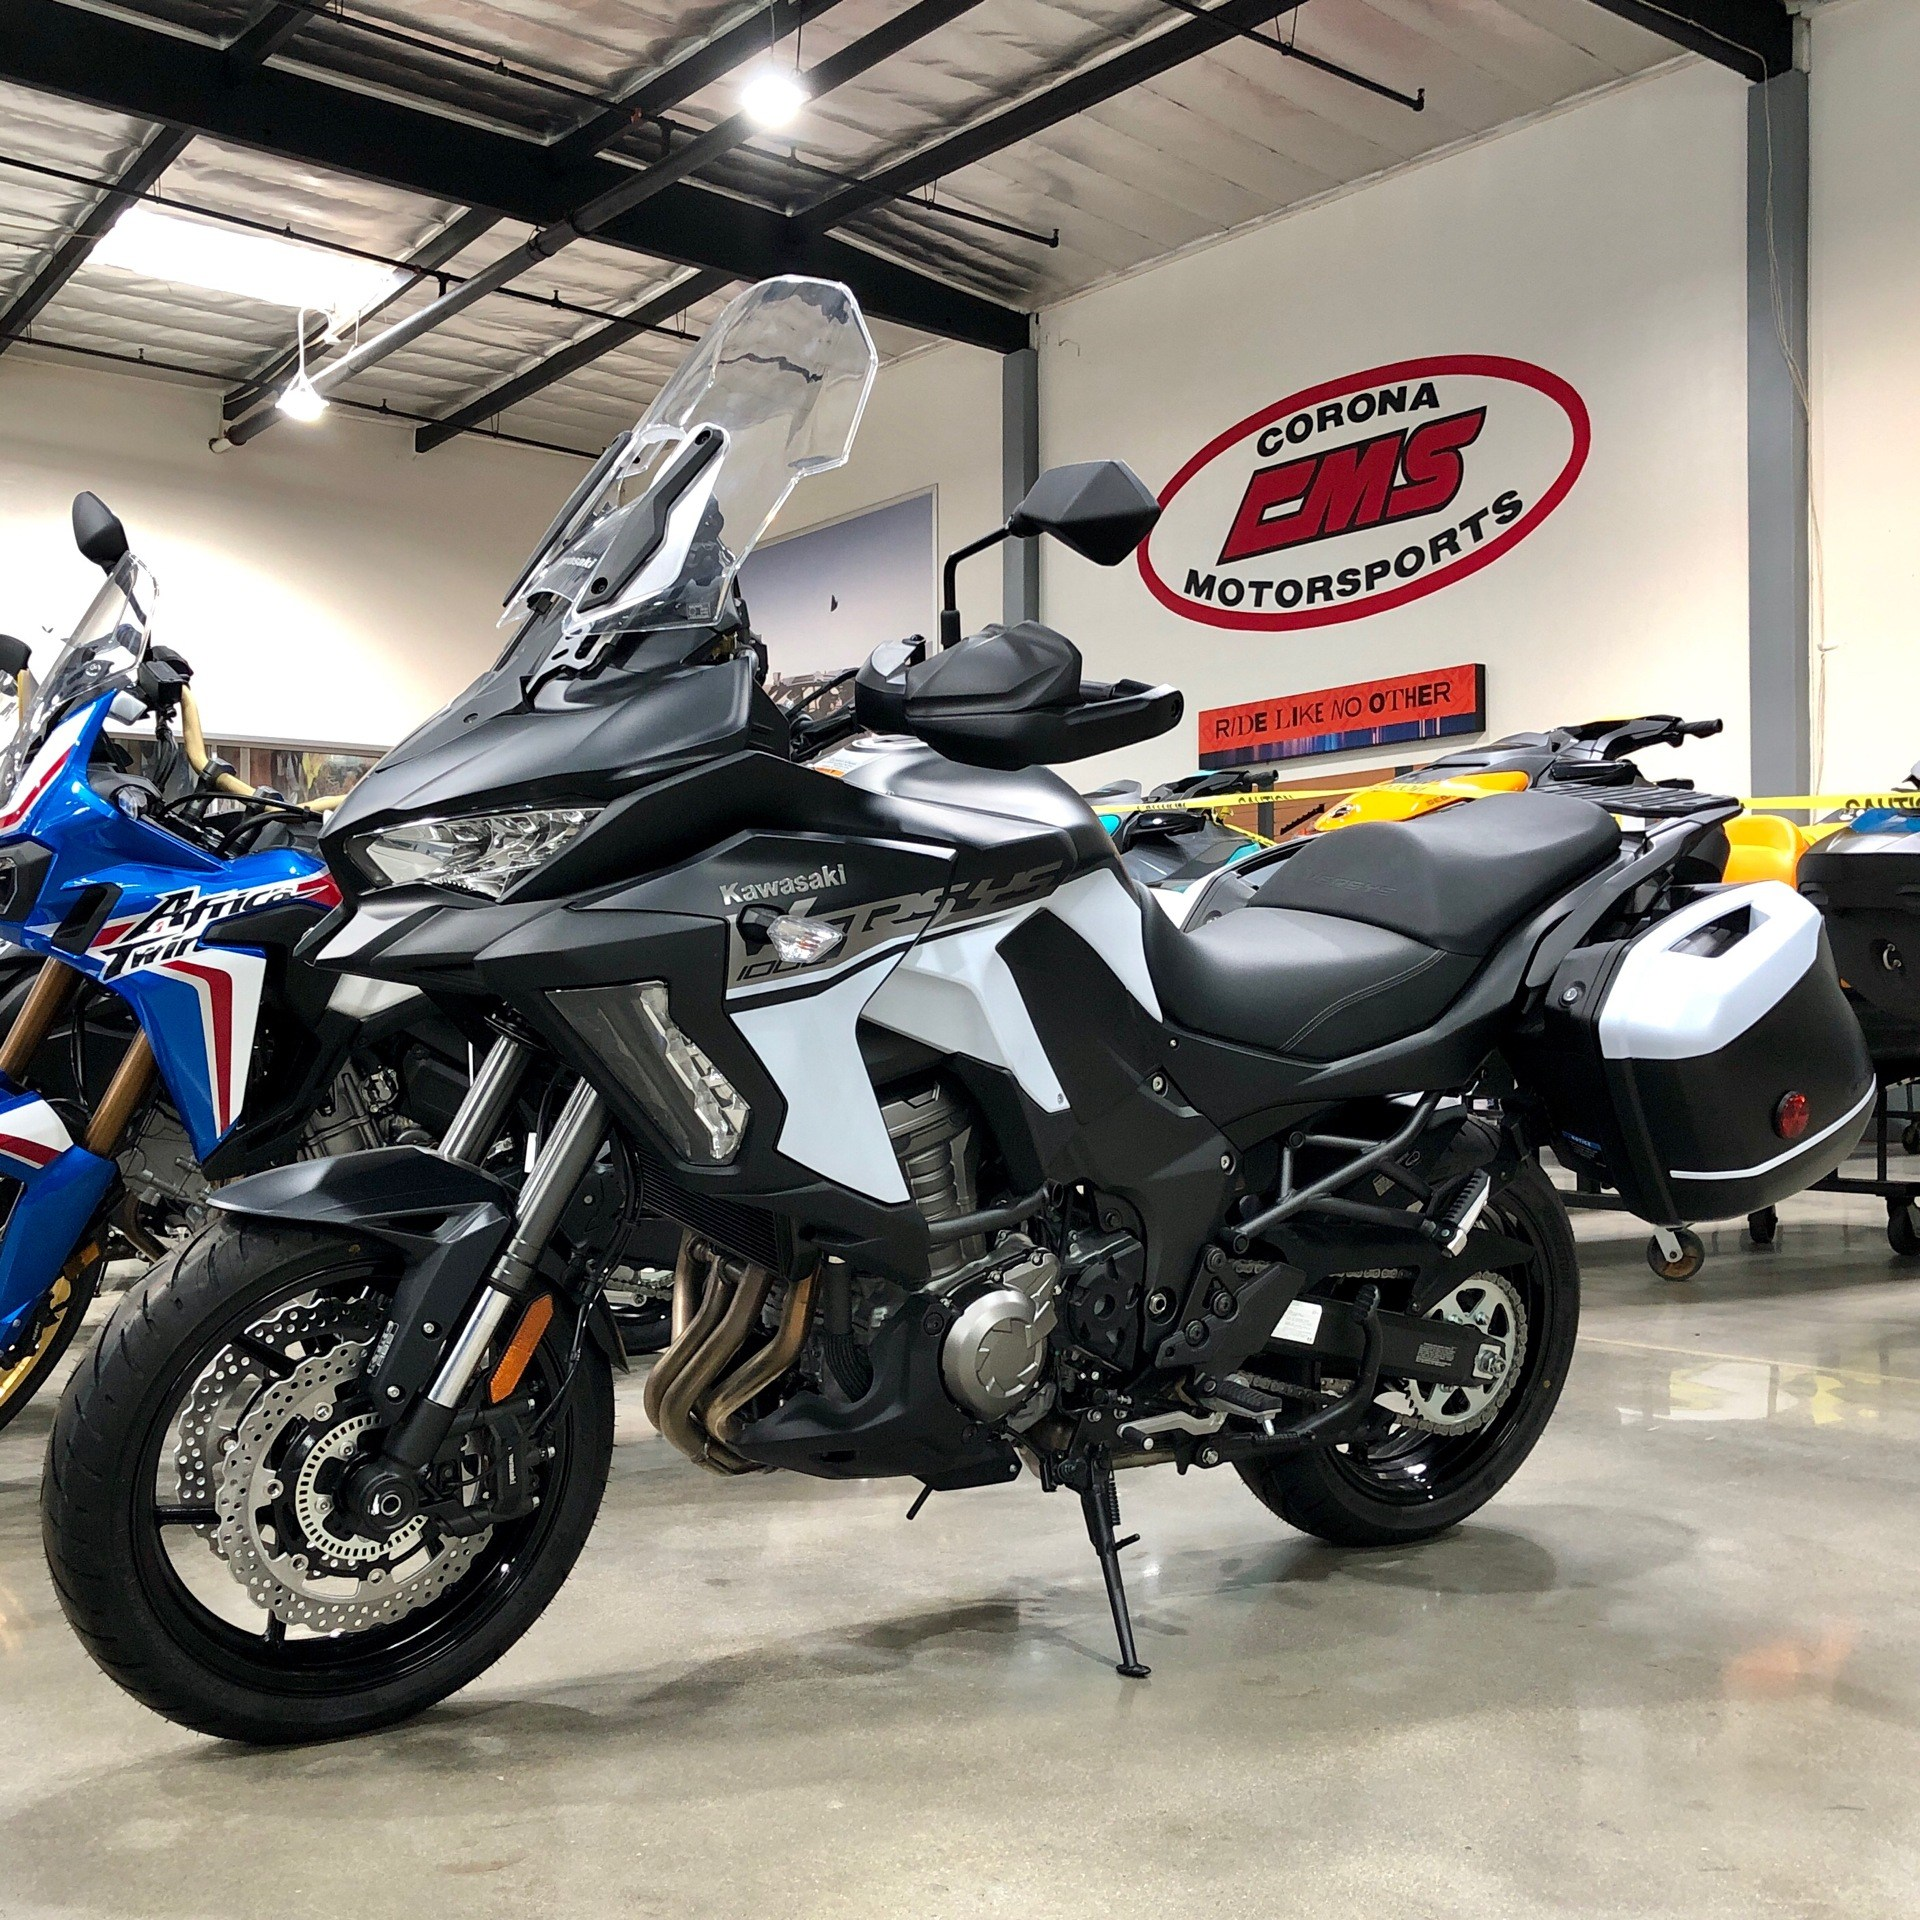 2019 Kawasaki Versys 1000 SE LT+ in Corona, California - Photo 2